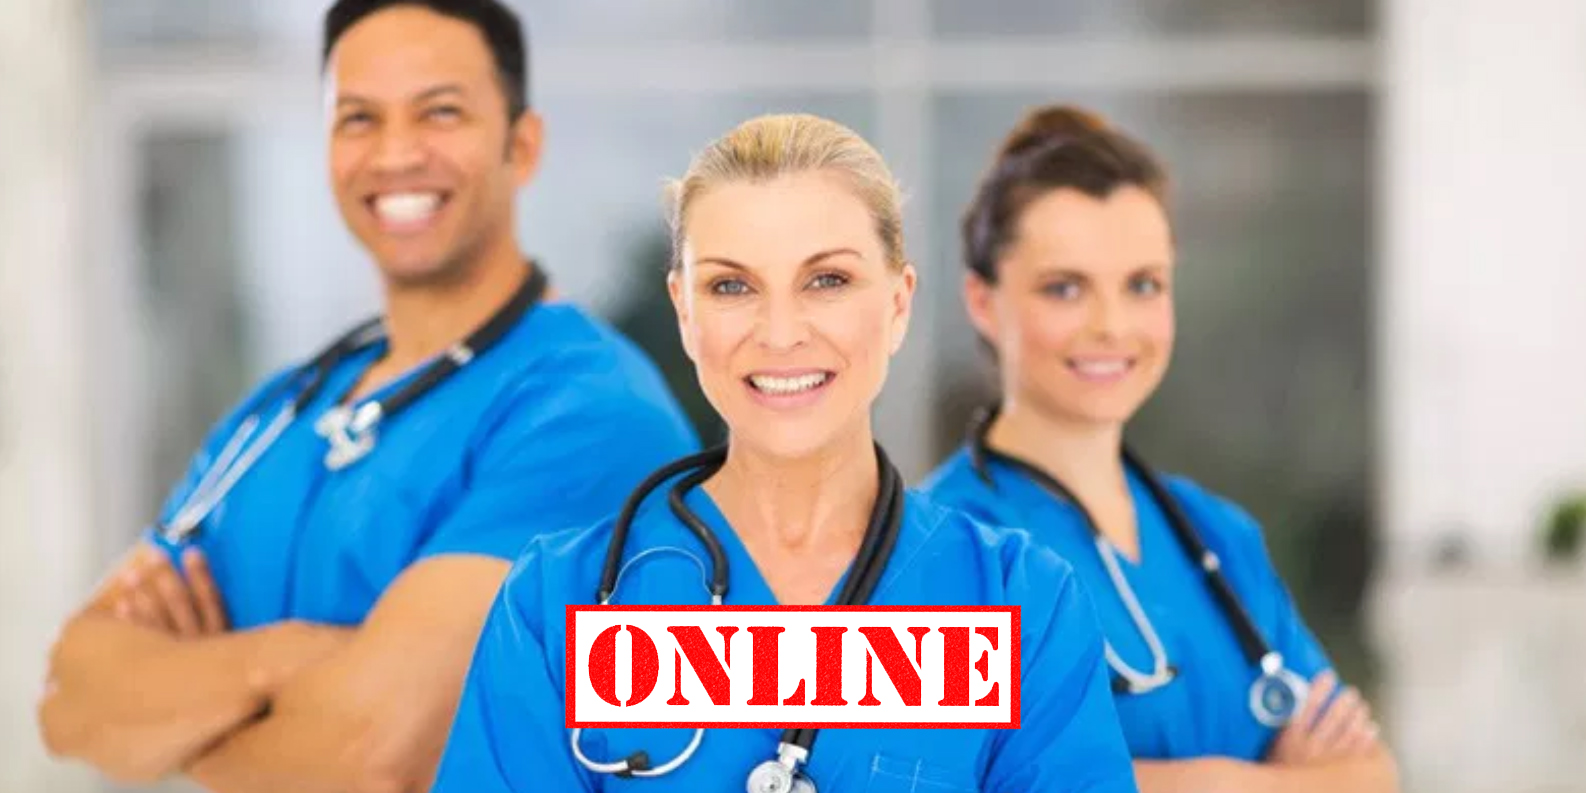 Online Cna Training Classes For Florida Elite Medical Academy